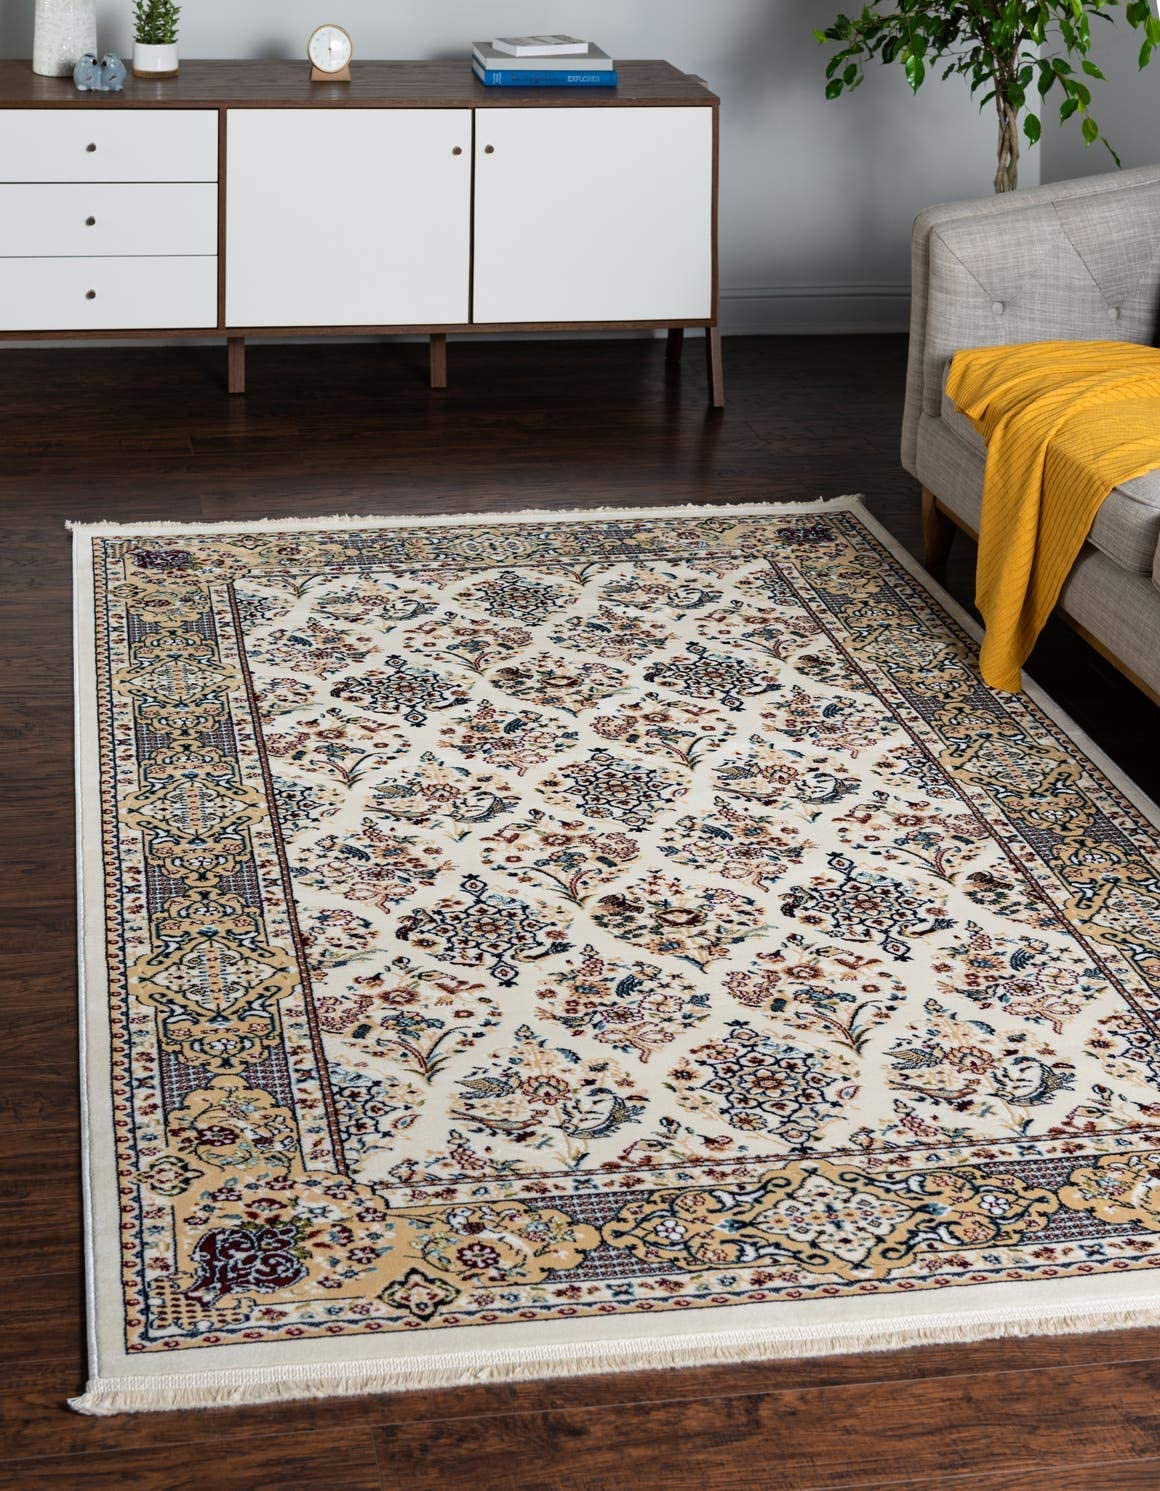 Unique Loom Narenj Collection Classic Traditional Repeating Pattern Ivory Area Rug 8 0 x 10 0